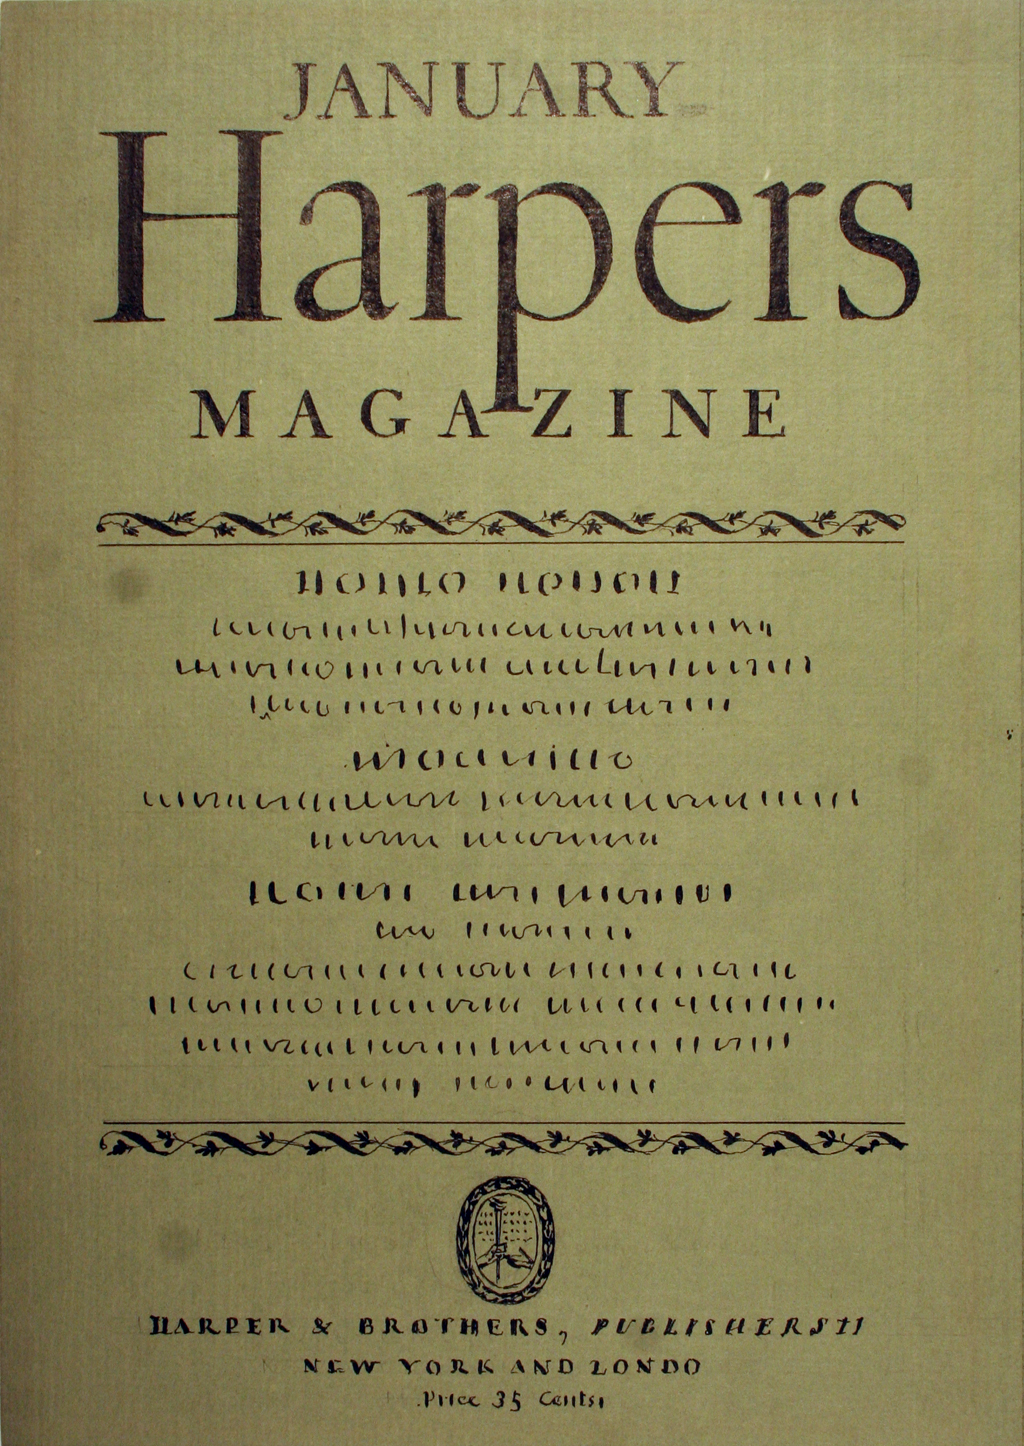 Comp for cover of Harpers Magazine by W.A. Dwiggins (1925). Boston Public Library, 2001 Dwiggins Collection, Box 4, Folder 24.